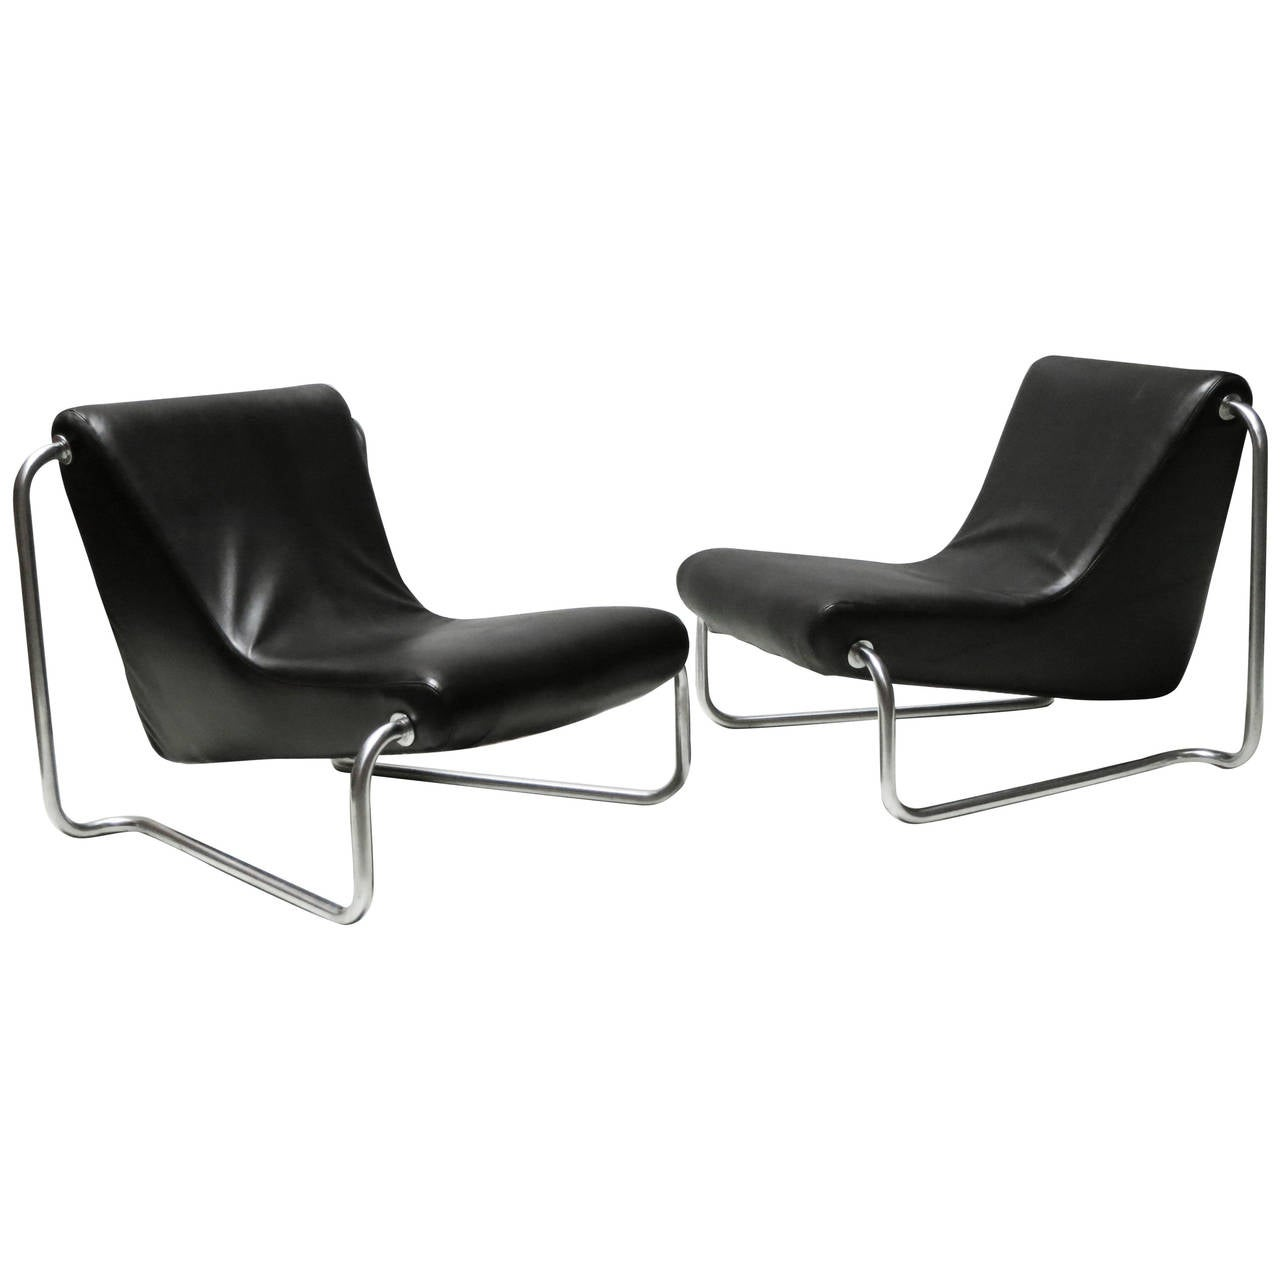 Pair of Leather and Steel 1970s Lounge Chairs by Luigi Colani for Fritz Hansen For Sale